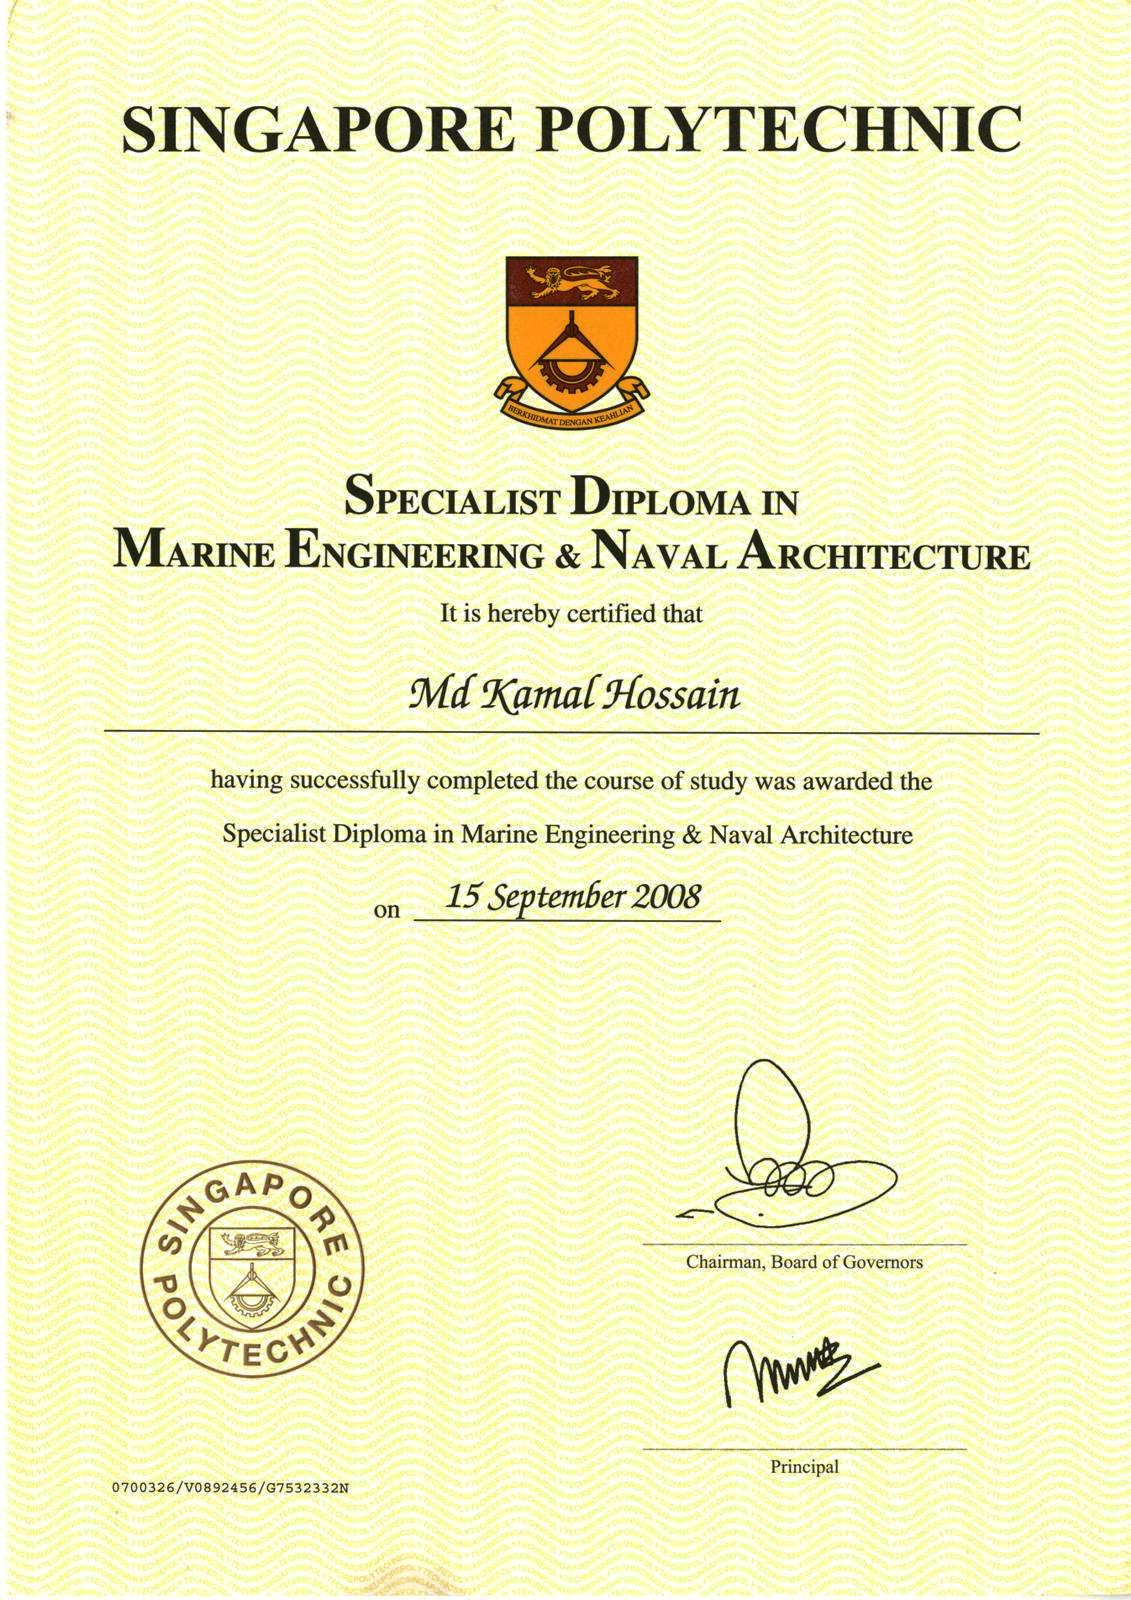 Advanced Diploma Certificate Smena Hossain Md Kamal Imareng